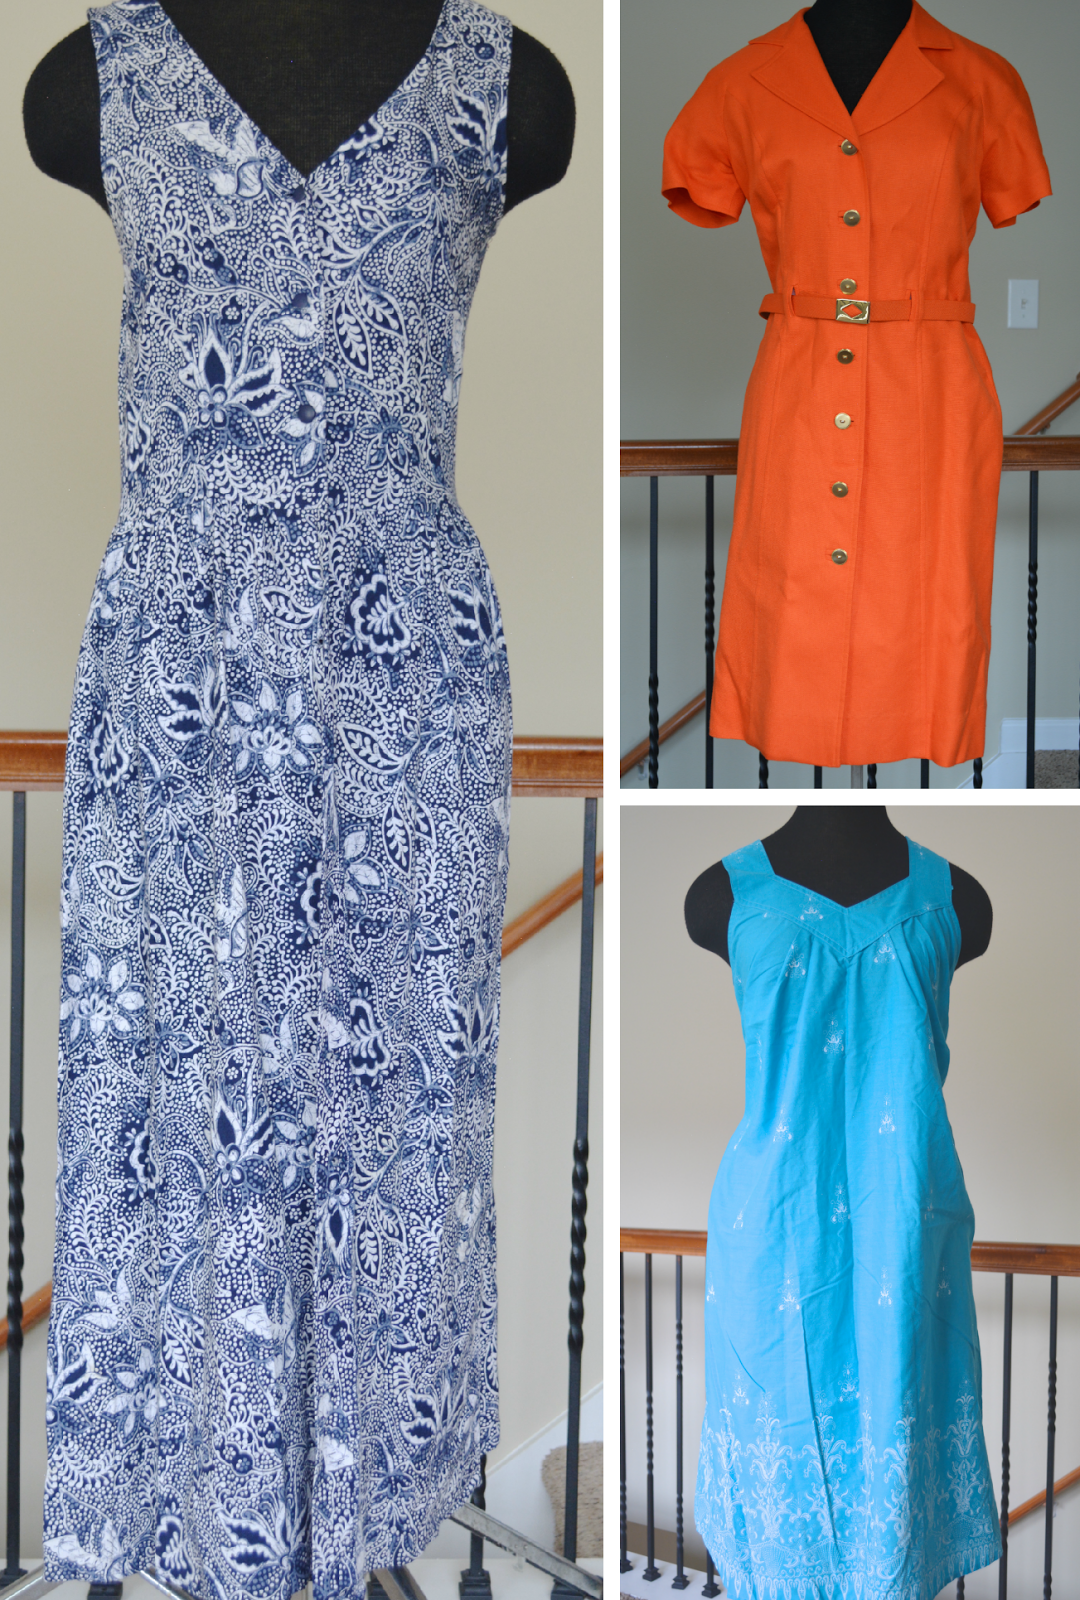 thrift haul goodwill vintage dresses